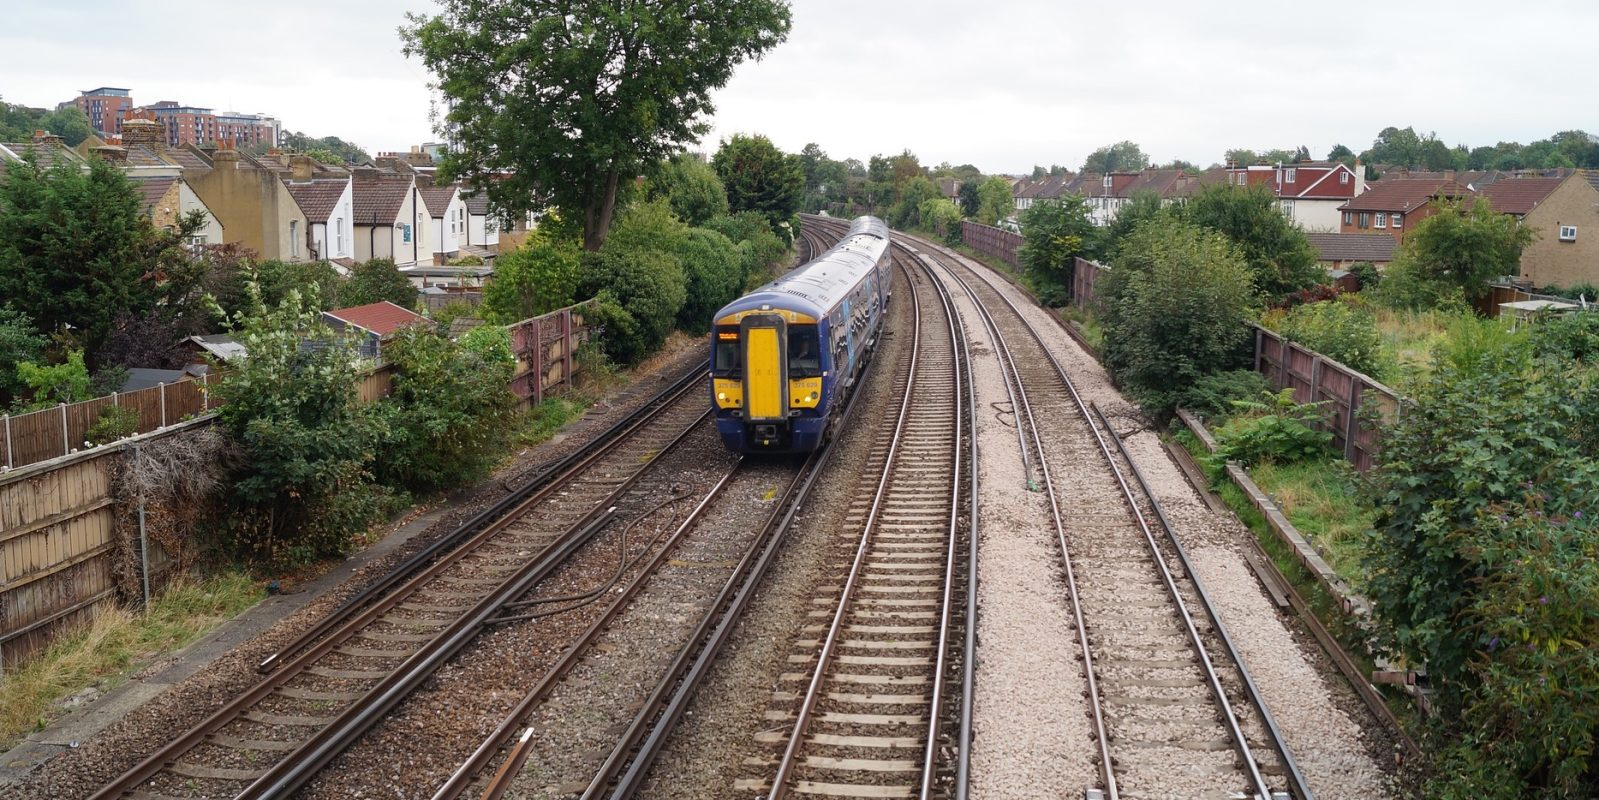 UK railway to directly power trains with solar energy in upcoming project